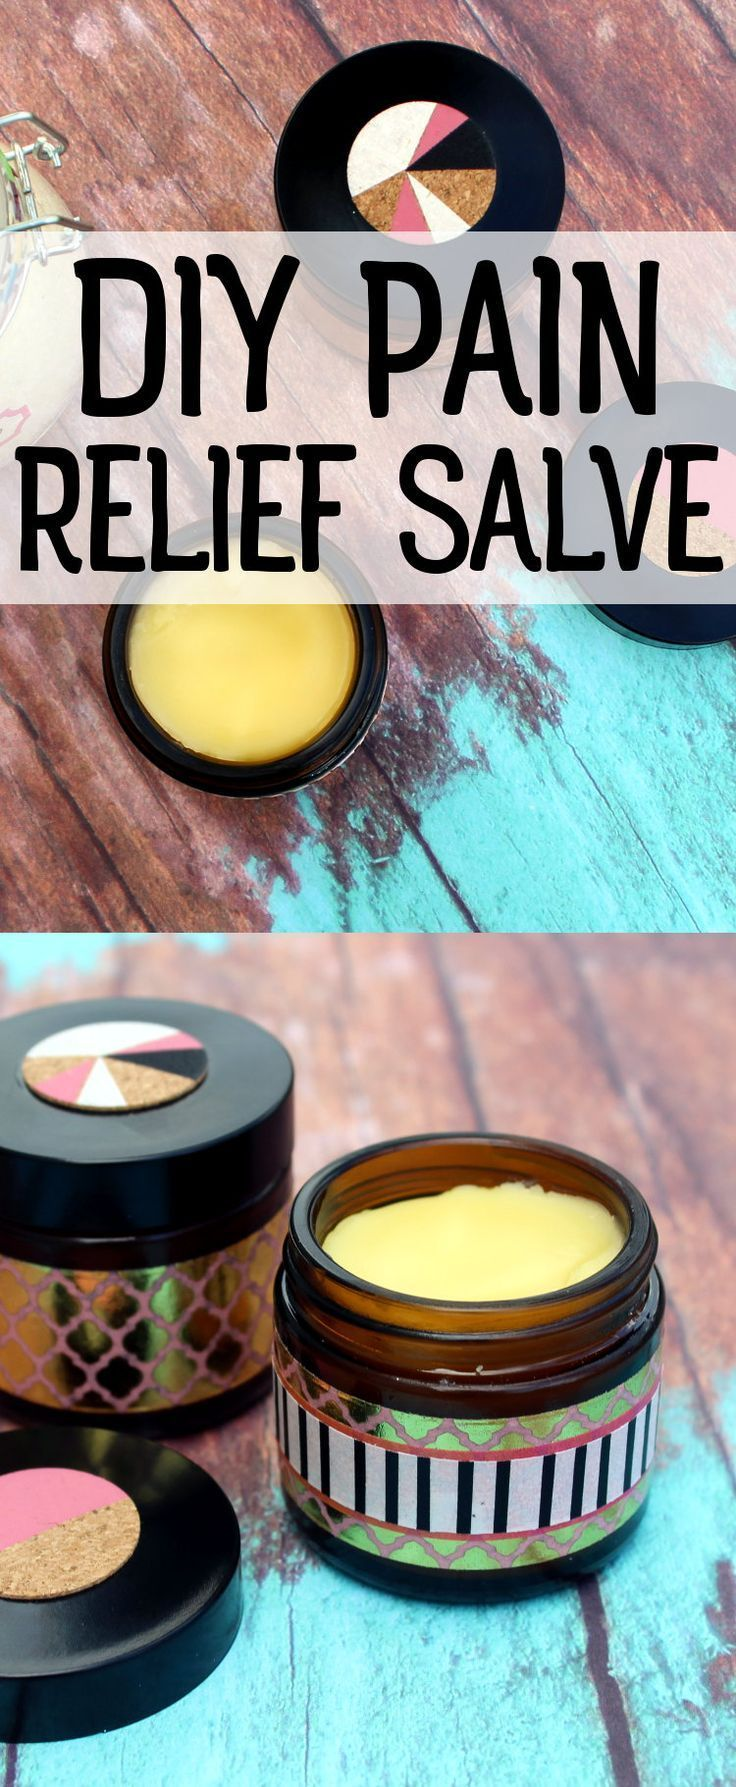 Arnica Pain Relief Salve Recipe for Muscle Pain & Inflammation